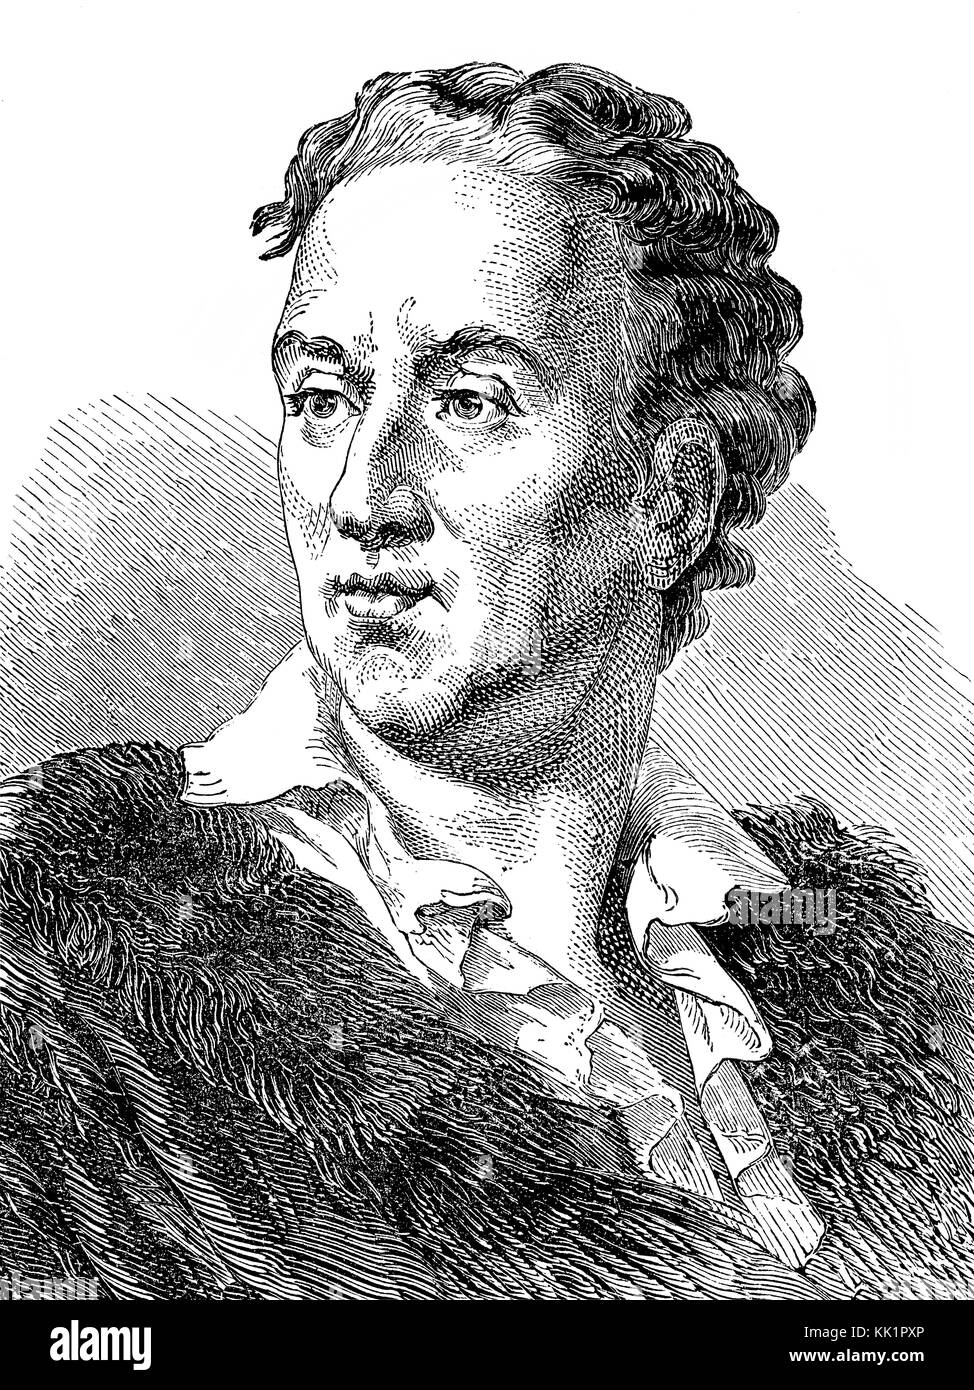 Denis Diderot, 1713 - 1784, a French writer, Enlightenment philosopher - Stock Image